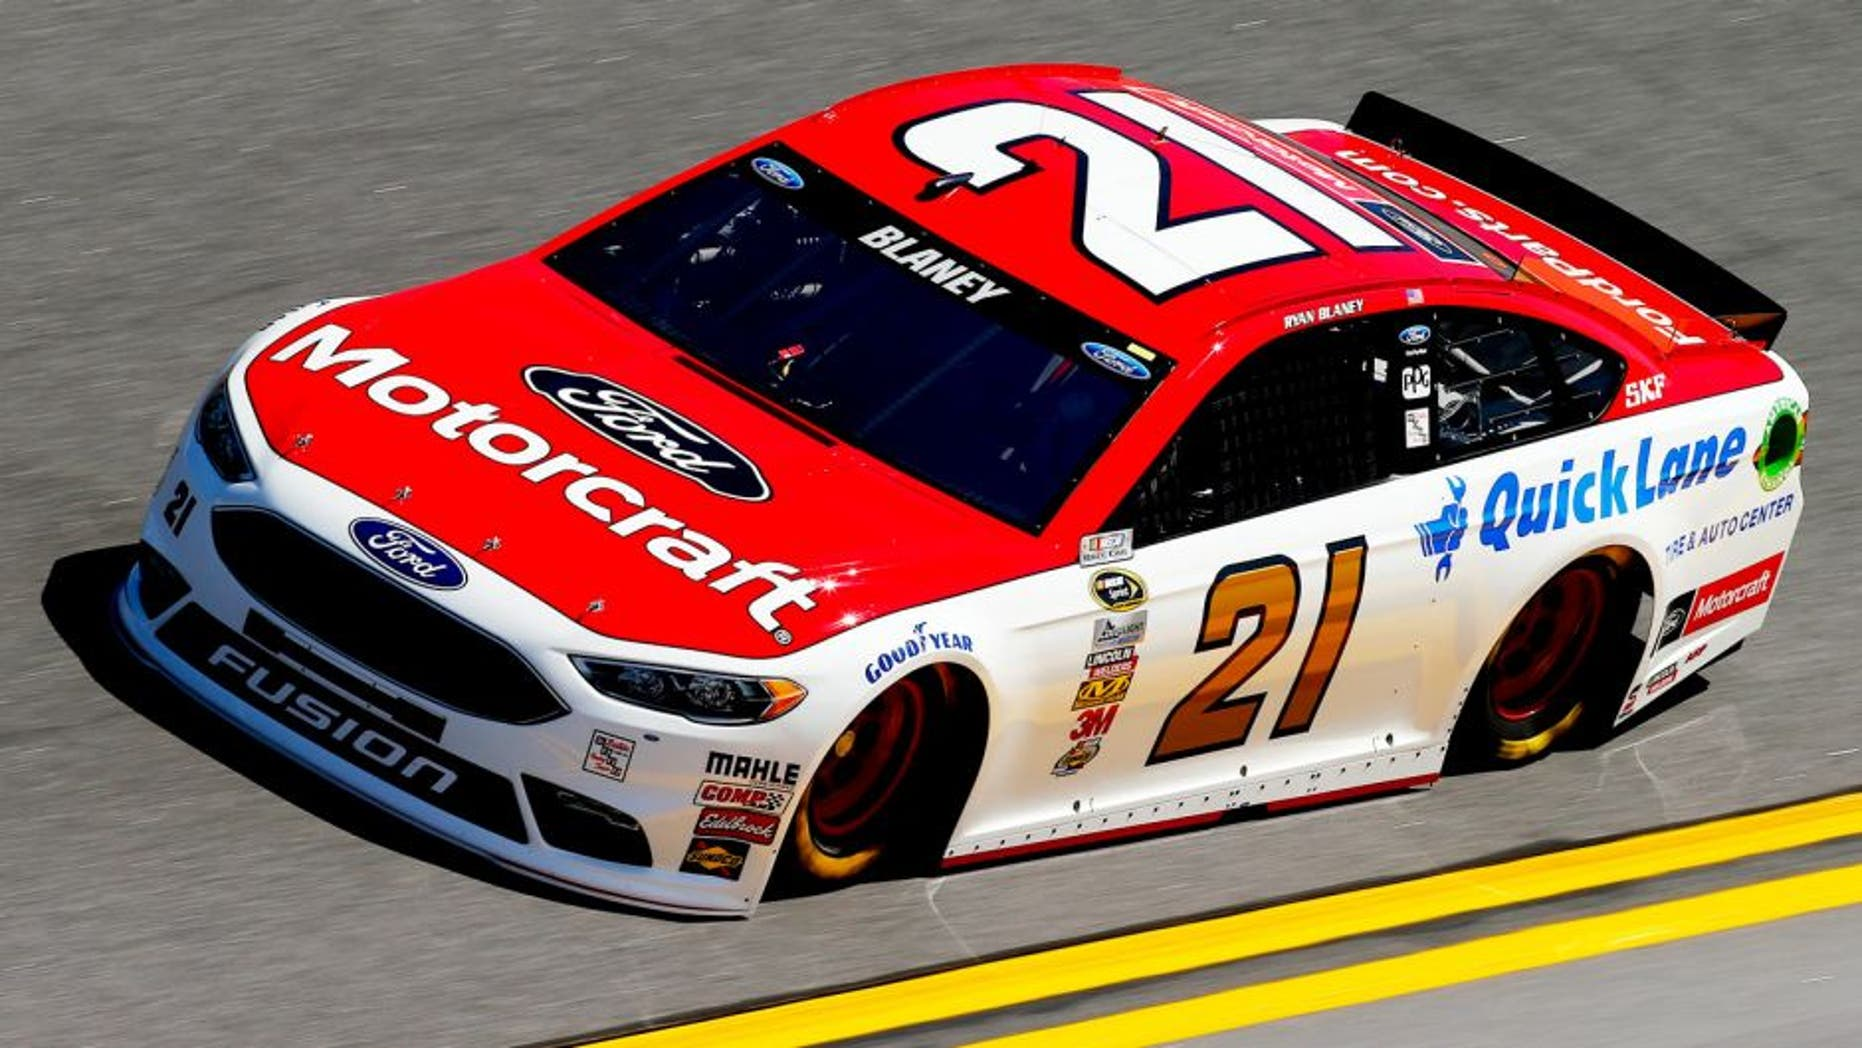 DAYTONA BEACH, FL - FEBRUARY 13: Ryan Blaney, driver of the #21 Motorcraft/Quick Lane Tire & Auto Center Ford, practices for the NASCAR Sprint Cup Series Daytona 500 at Daytona International Speedway on February 13, 2016 in Daytona Beach, Florida. (Photo by Jonathan Ferrey/NASCAR via Getty Images)